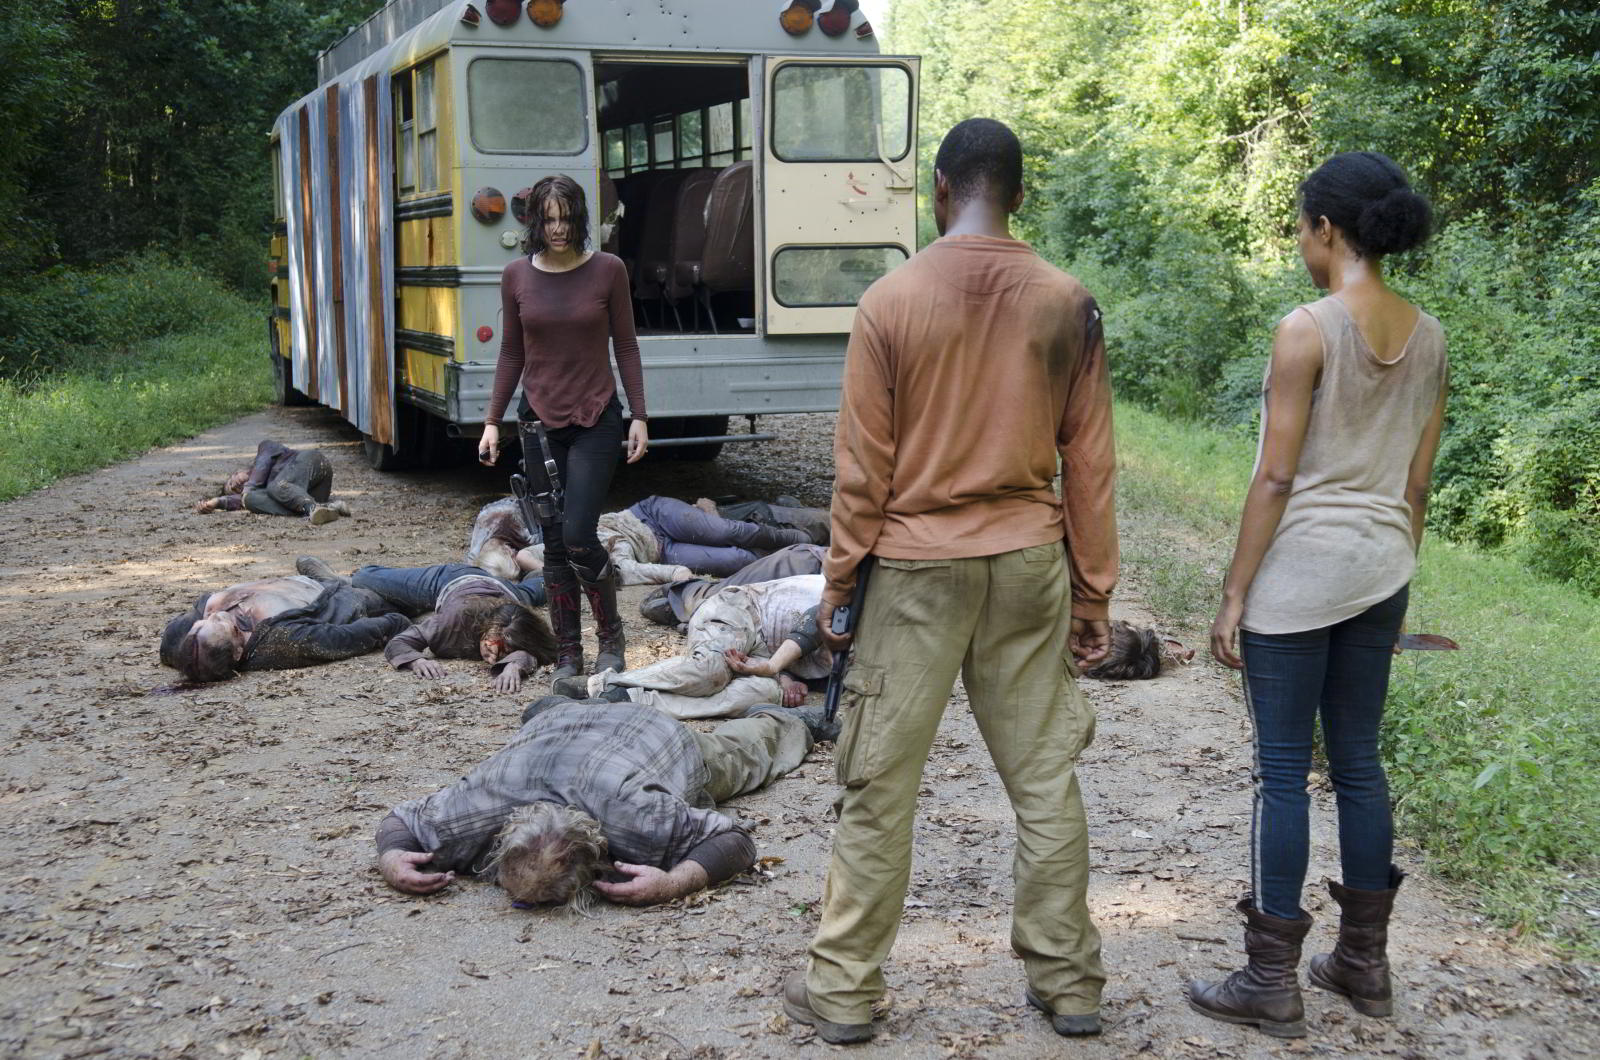 walking-dead-s4-e10-inmates-maggie-sasha-bob-over-dead-bus-zombies